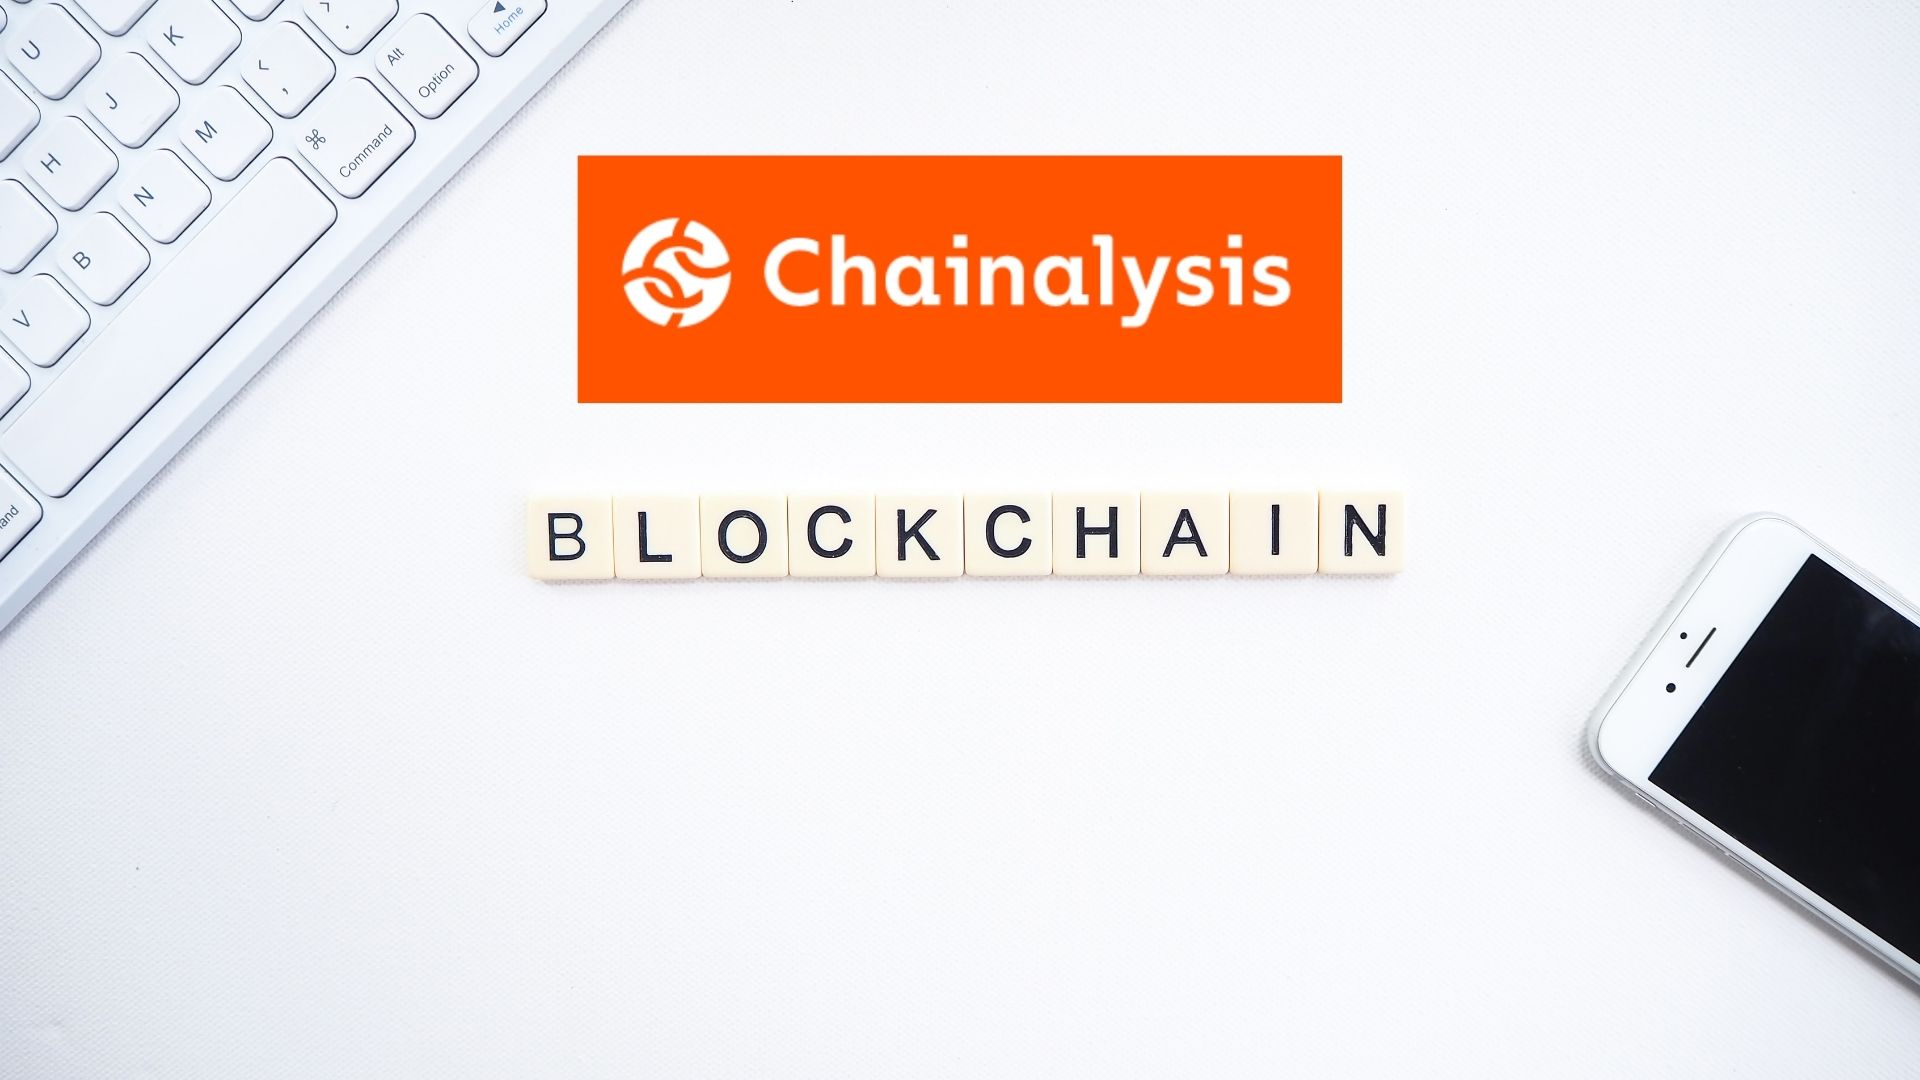 keyboard, mobile phone, blockchain in letters and Chainalysis logo